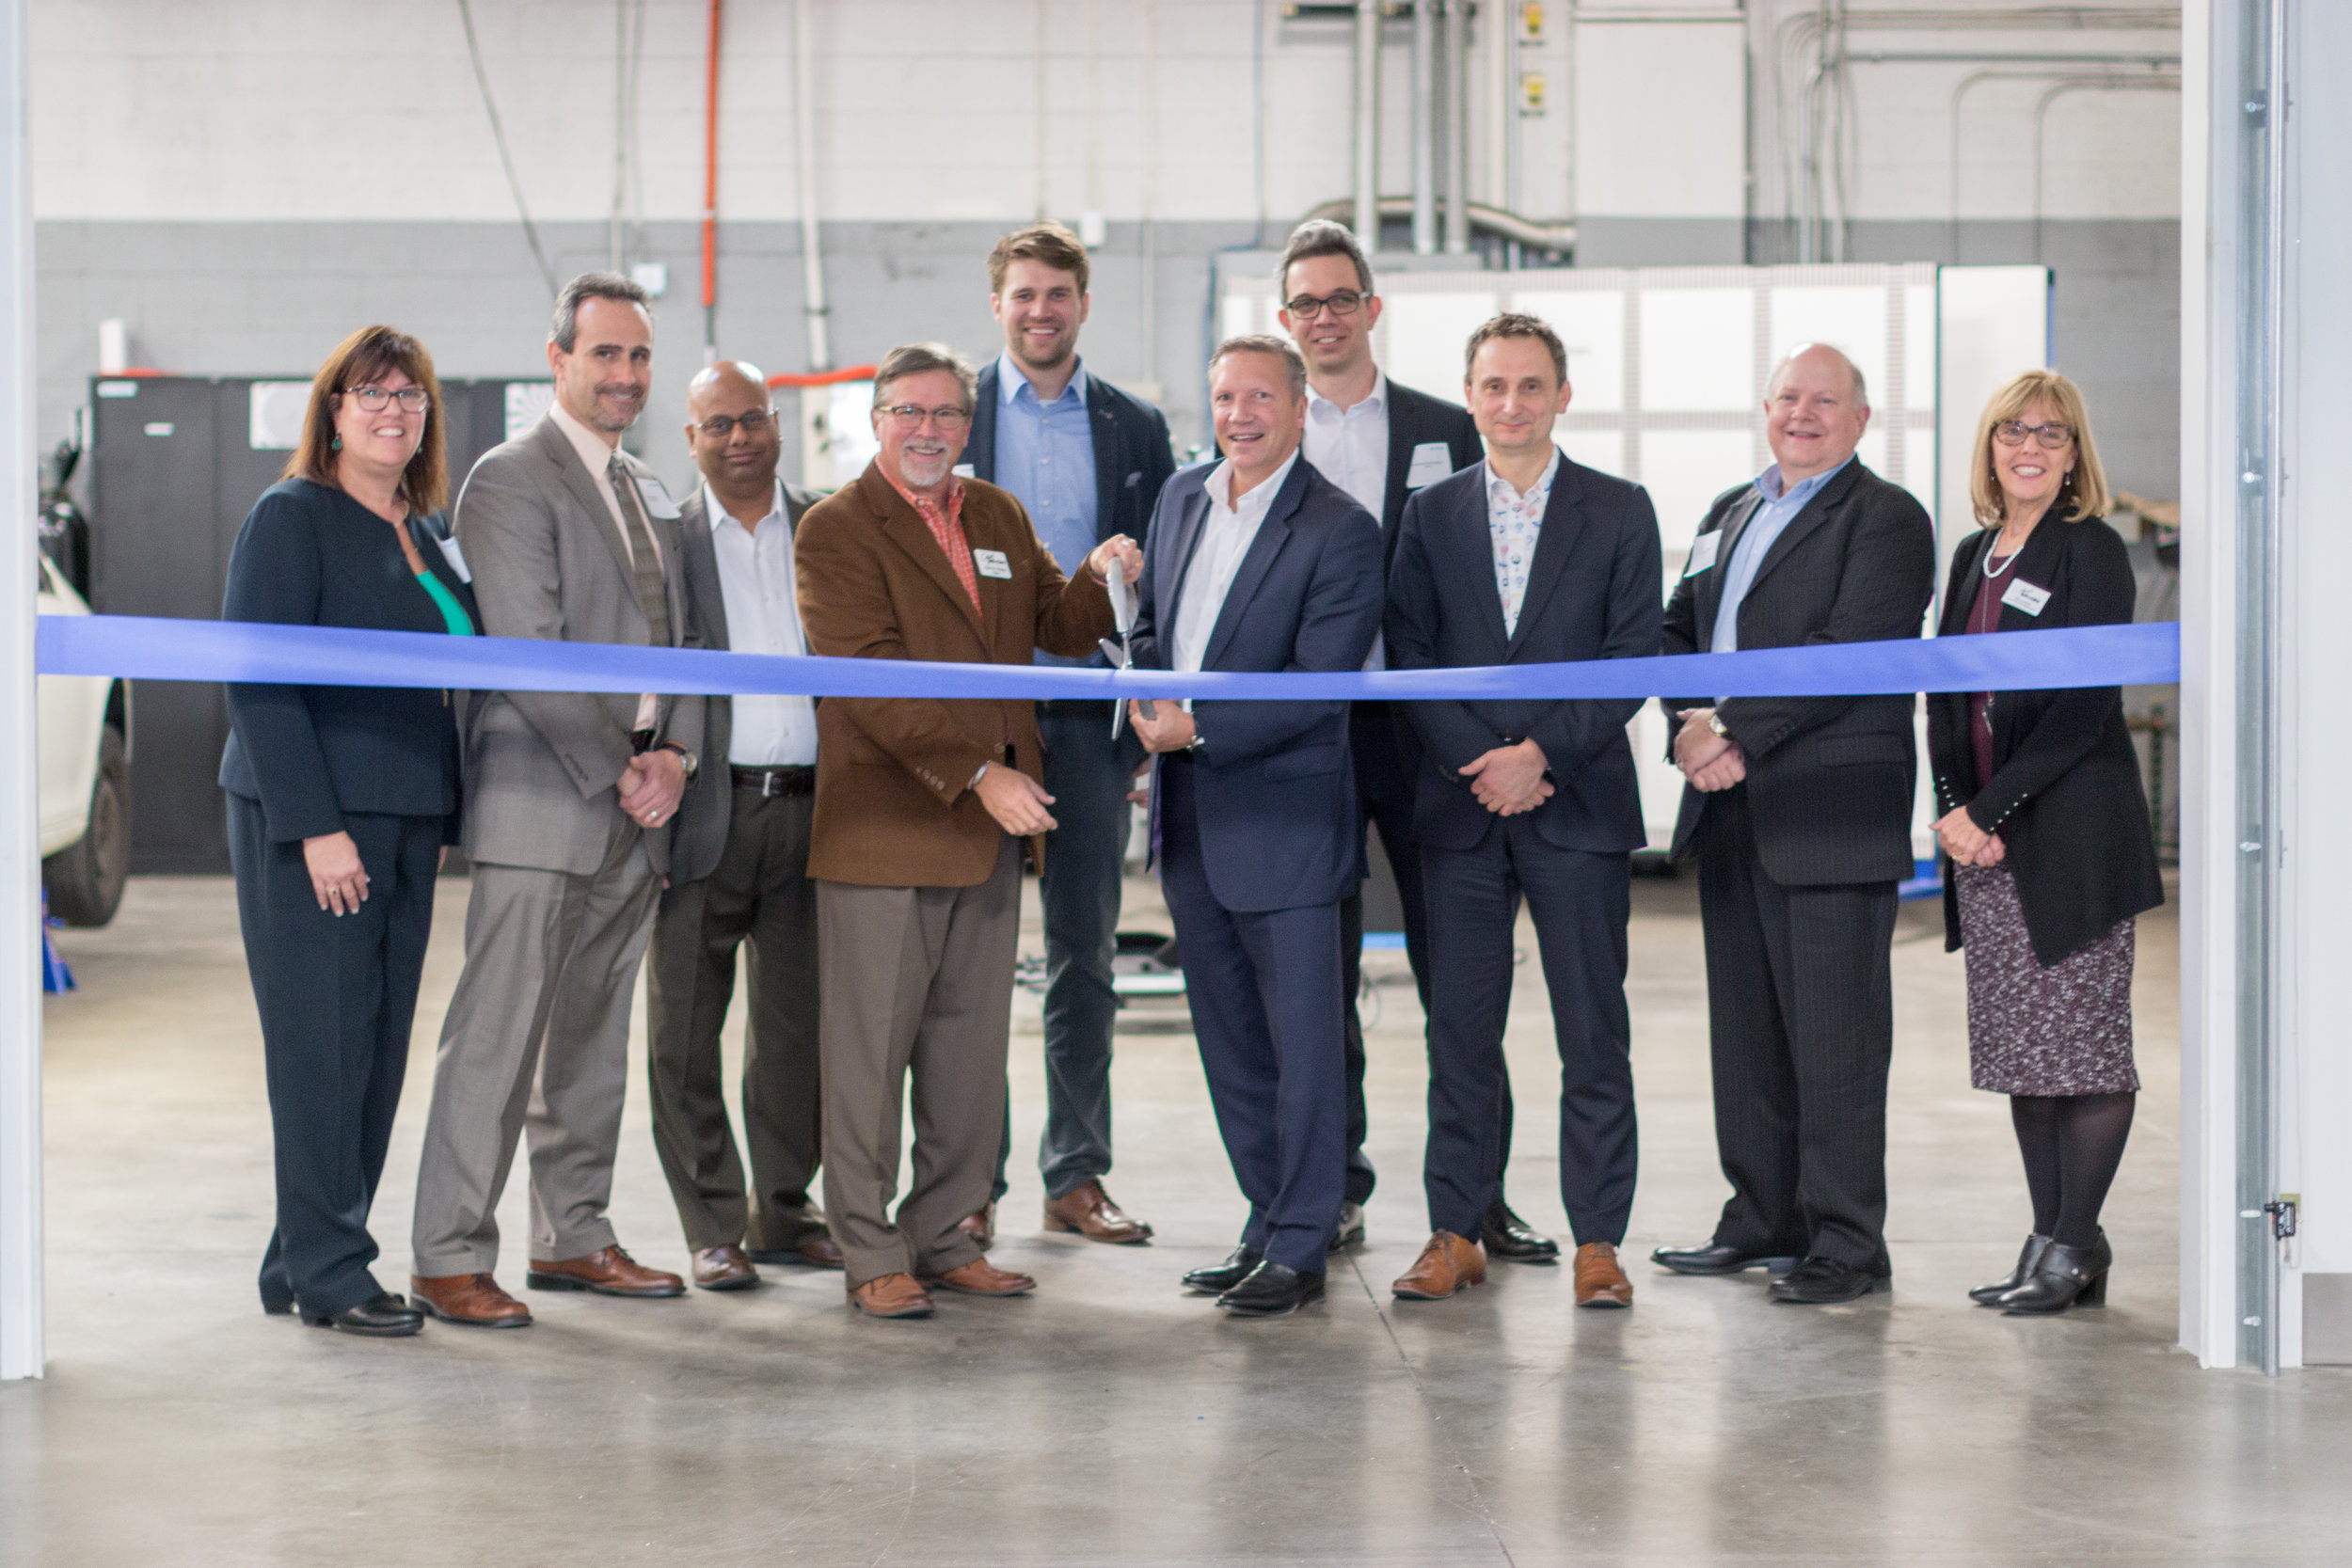 Ribbon Cutting Ceremony in Wixom, MI